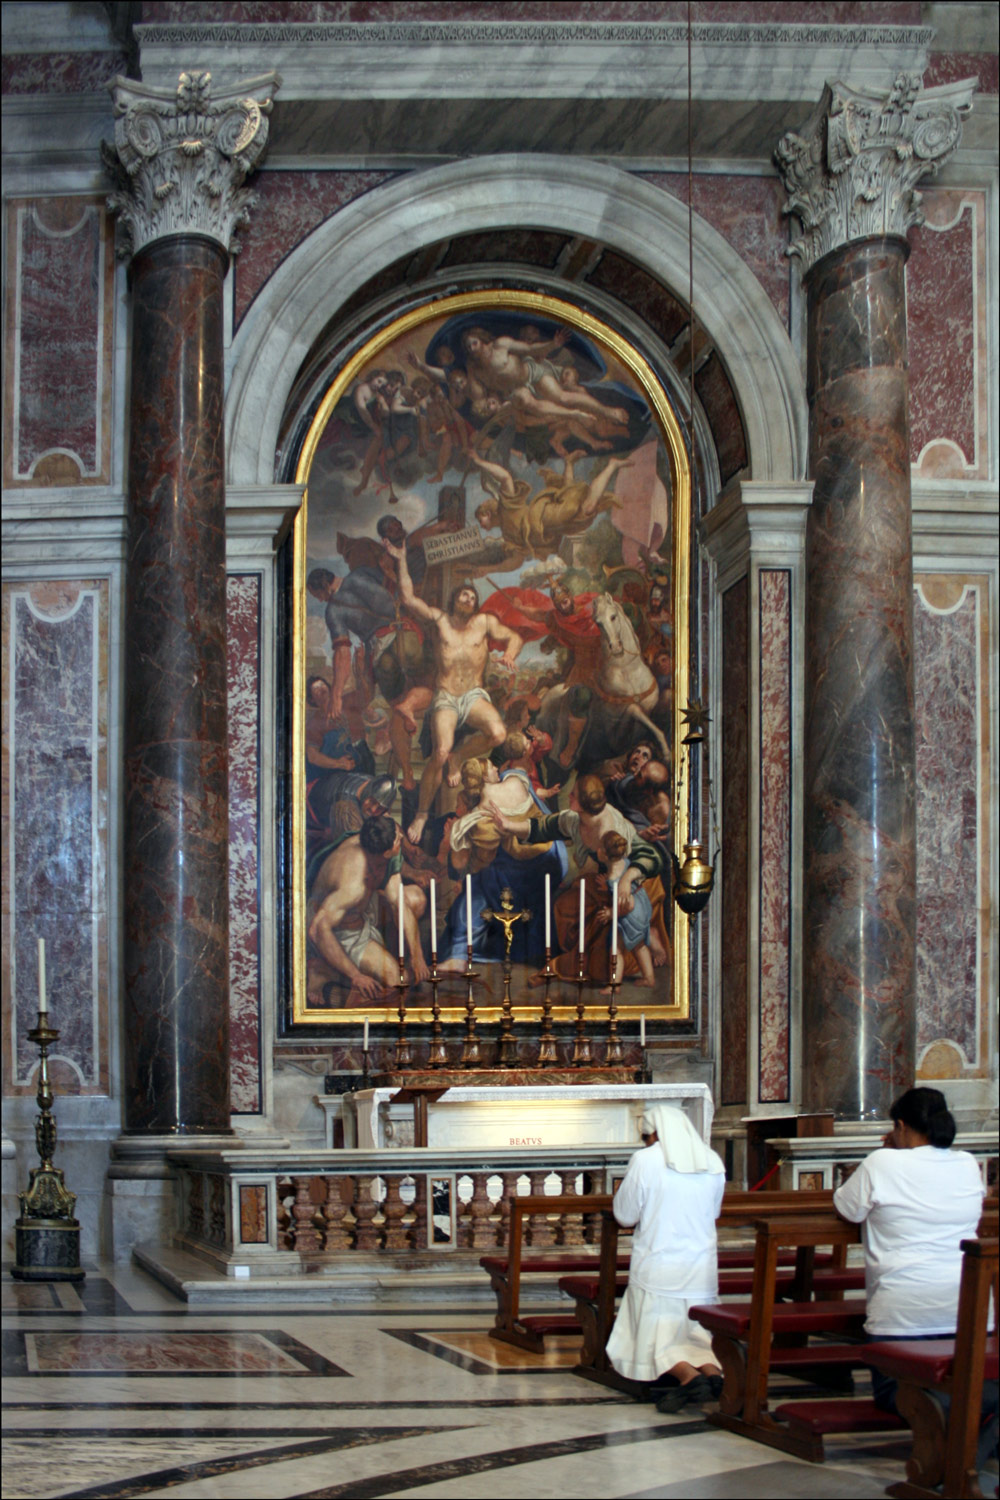 The Chapel of Saint Sebastian